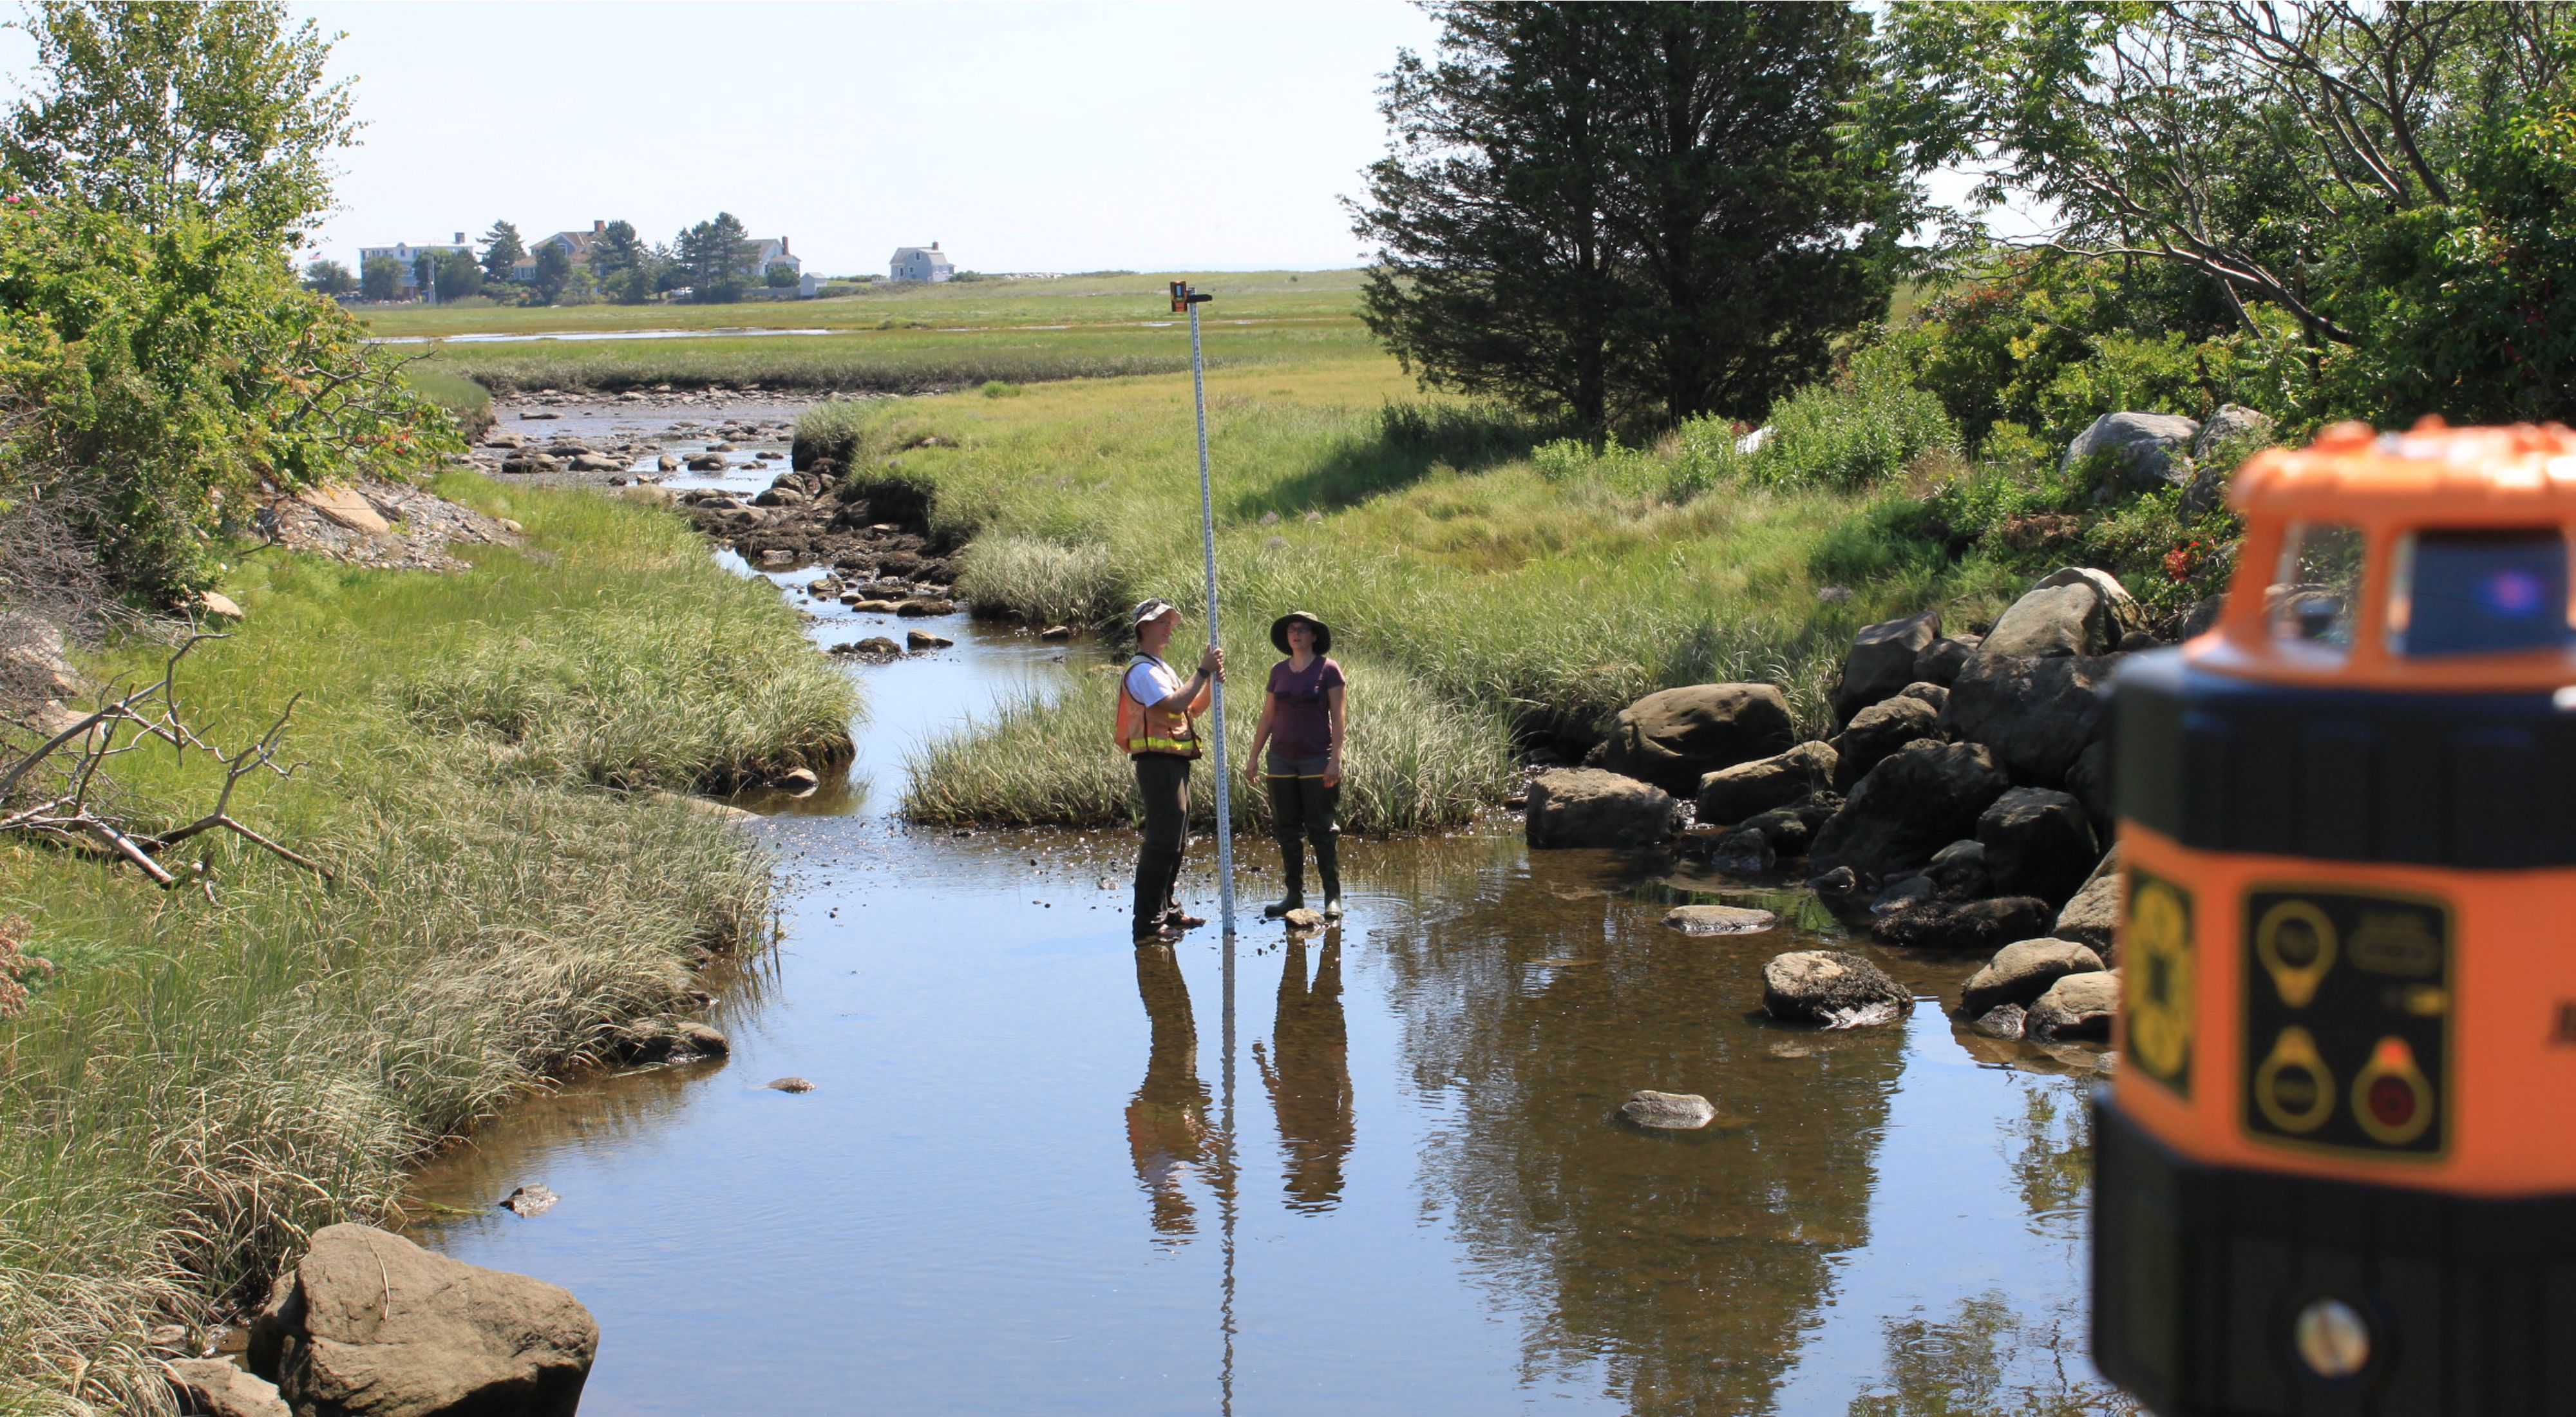 Scientists take measurements at a tidal culvert in Rye, New Hampshire